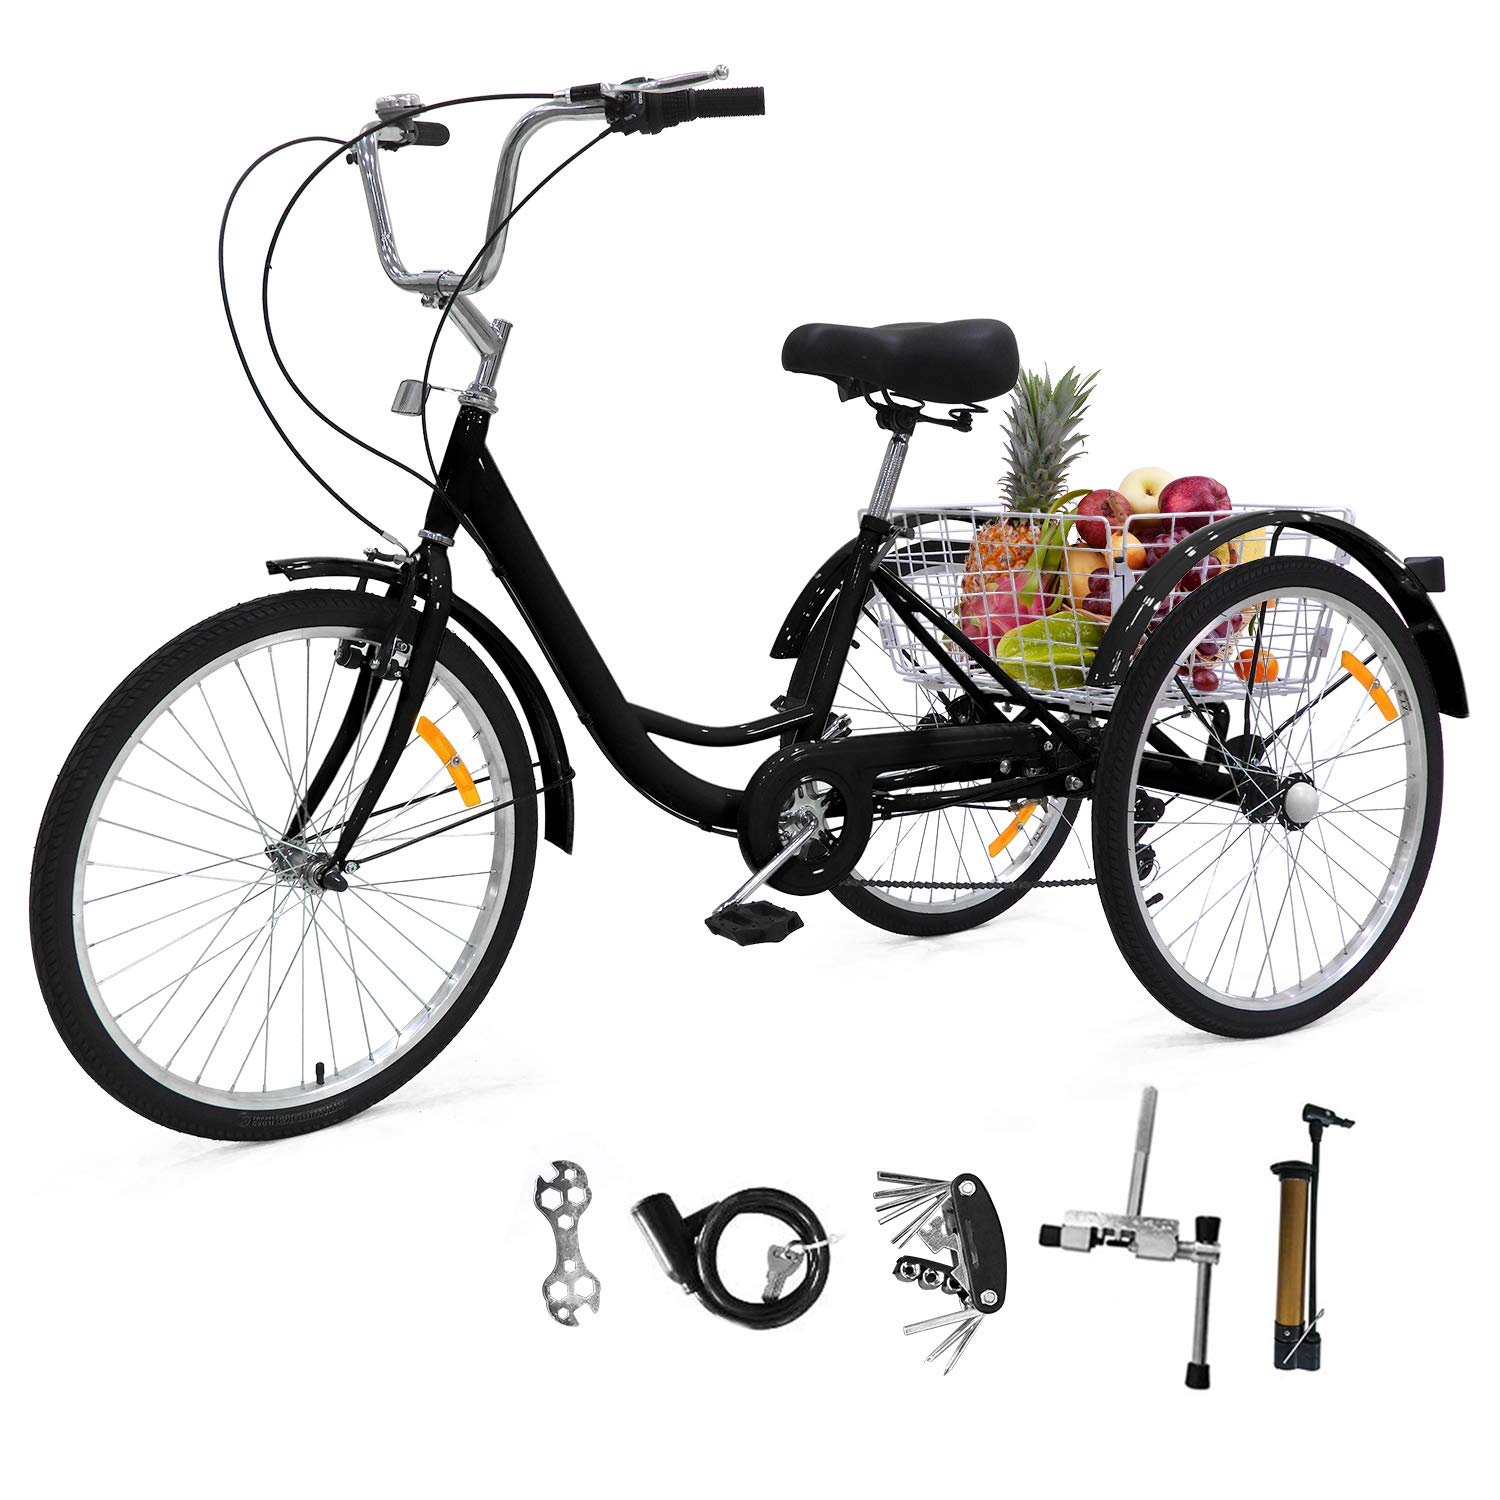 EOSAGA Adult Tricycles 7 Speed, Adult Trikes 24/26 inch 3 Wheel Bikes, Three-Wheeled Bicycles Cruise Trike for Recreation, Shopping with Basket